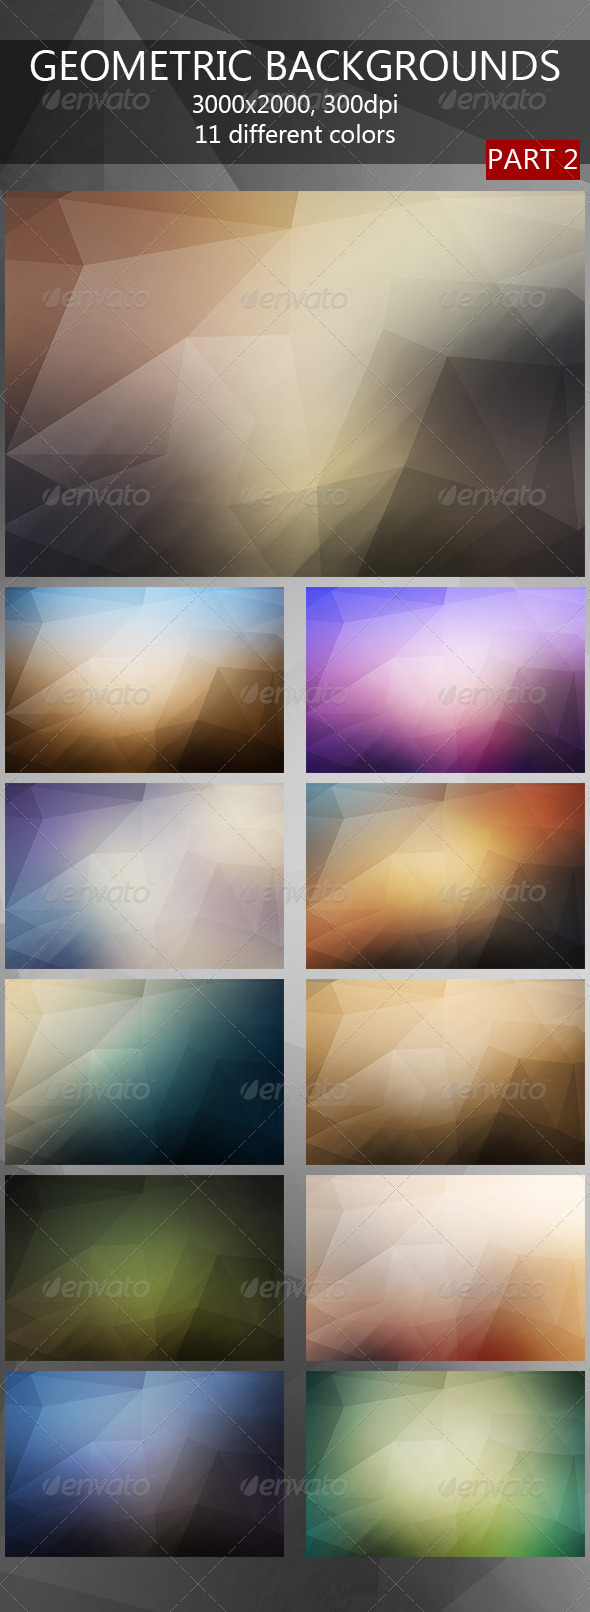 Geometric Backgrounds 2